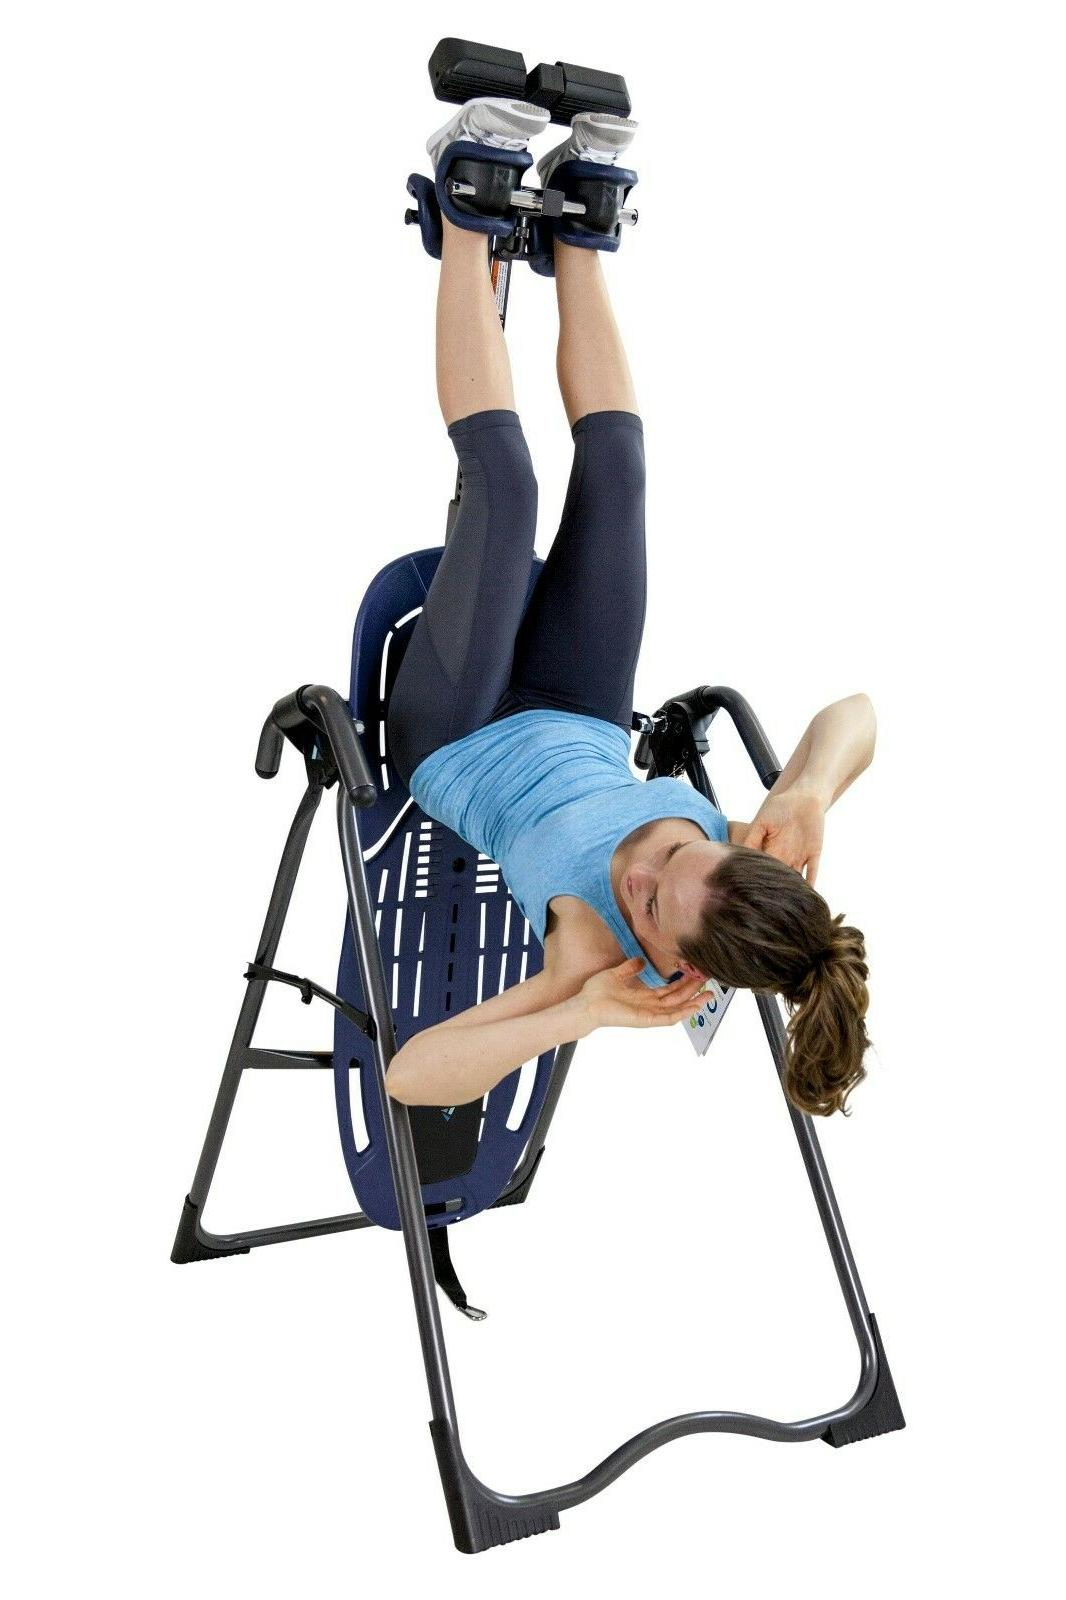 HOT TEETER Inversion Table NX1002